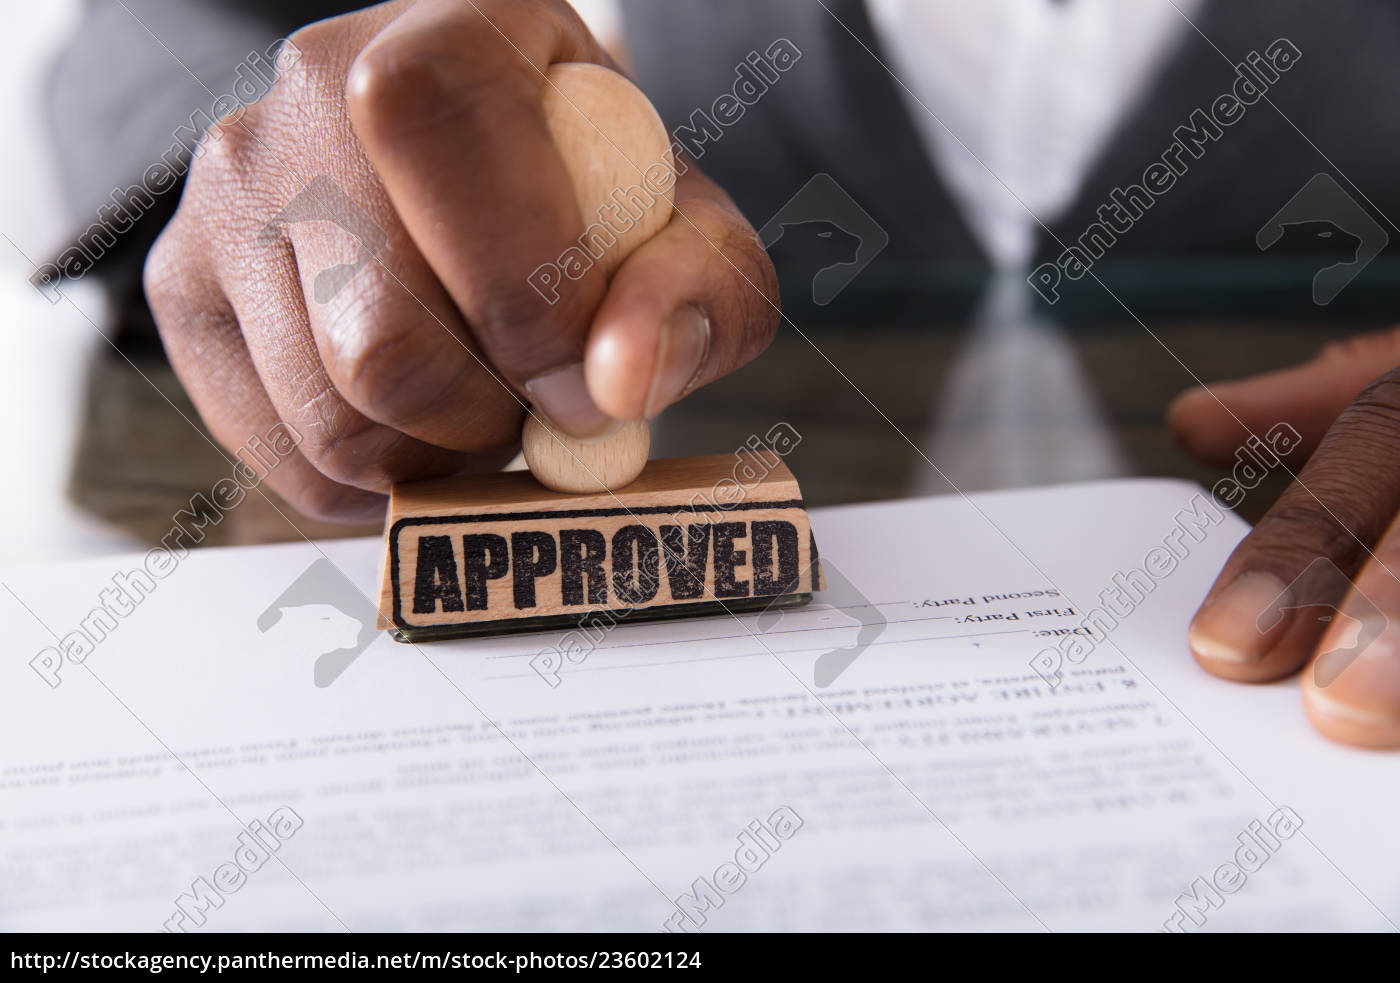 person's, hand, stamping, on, approved, contract - 23602124